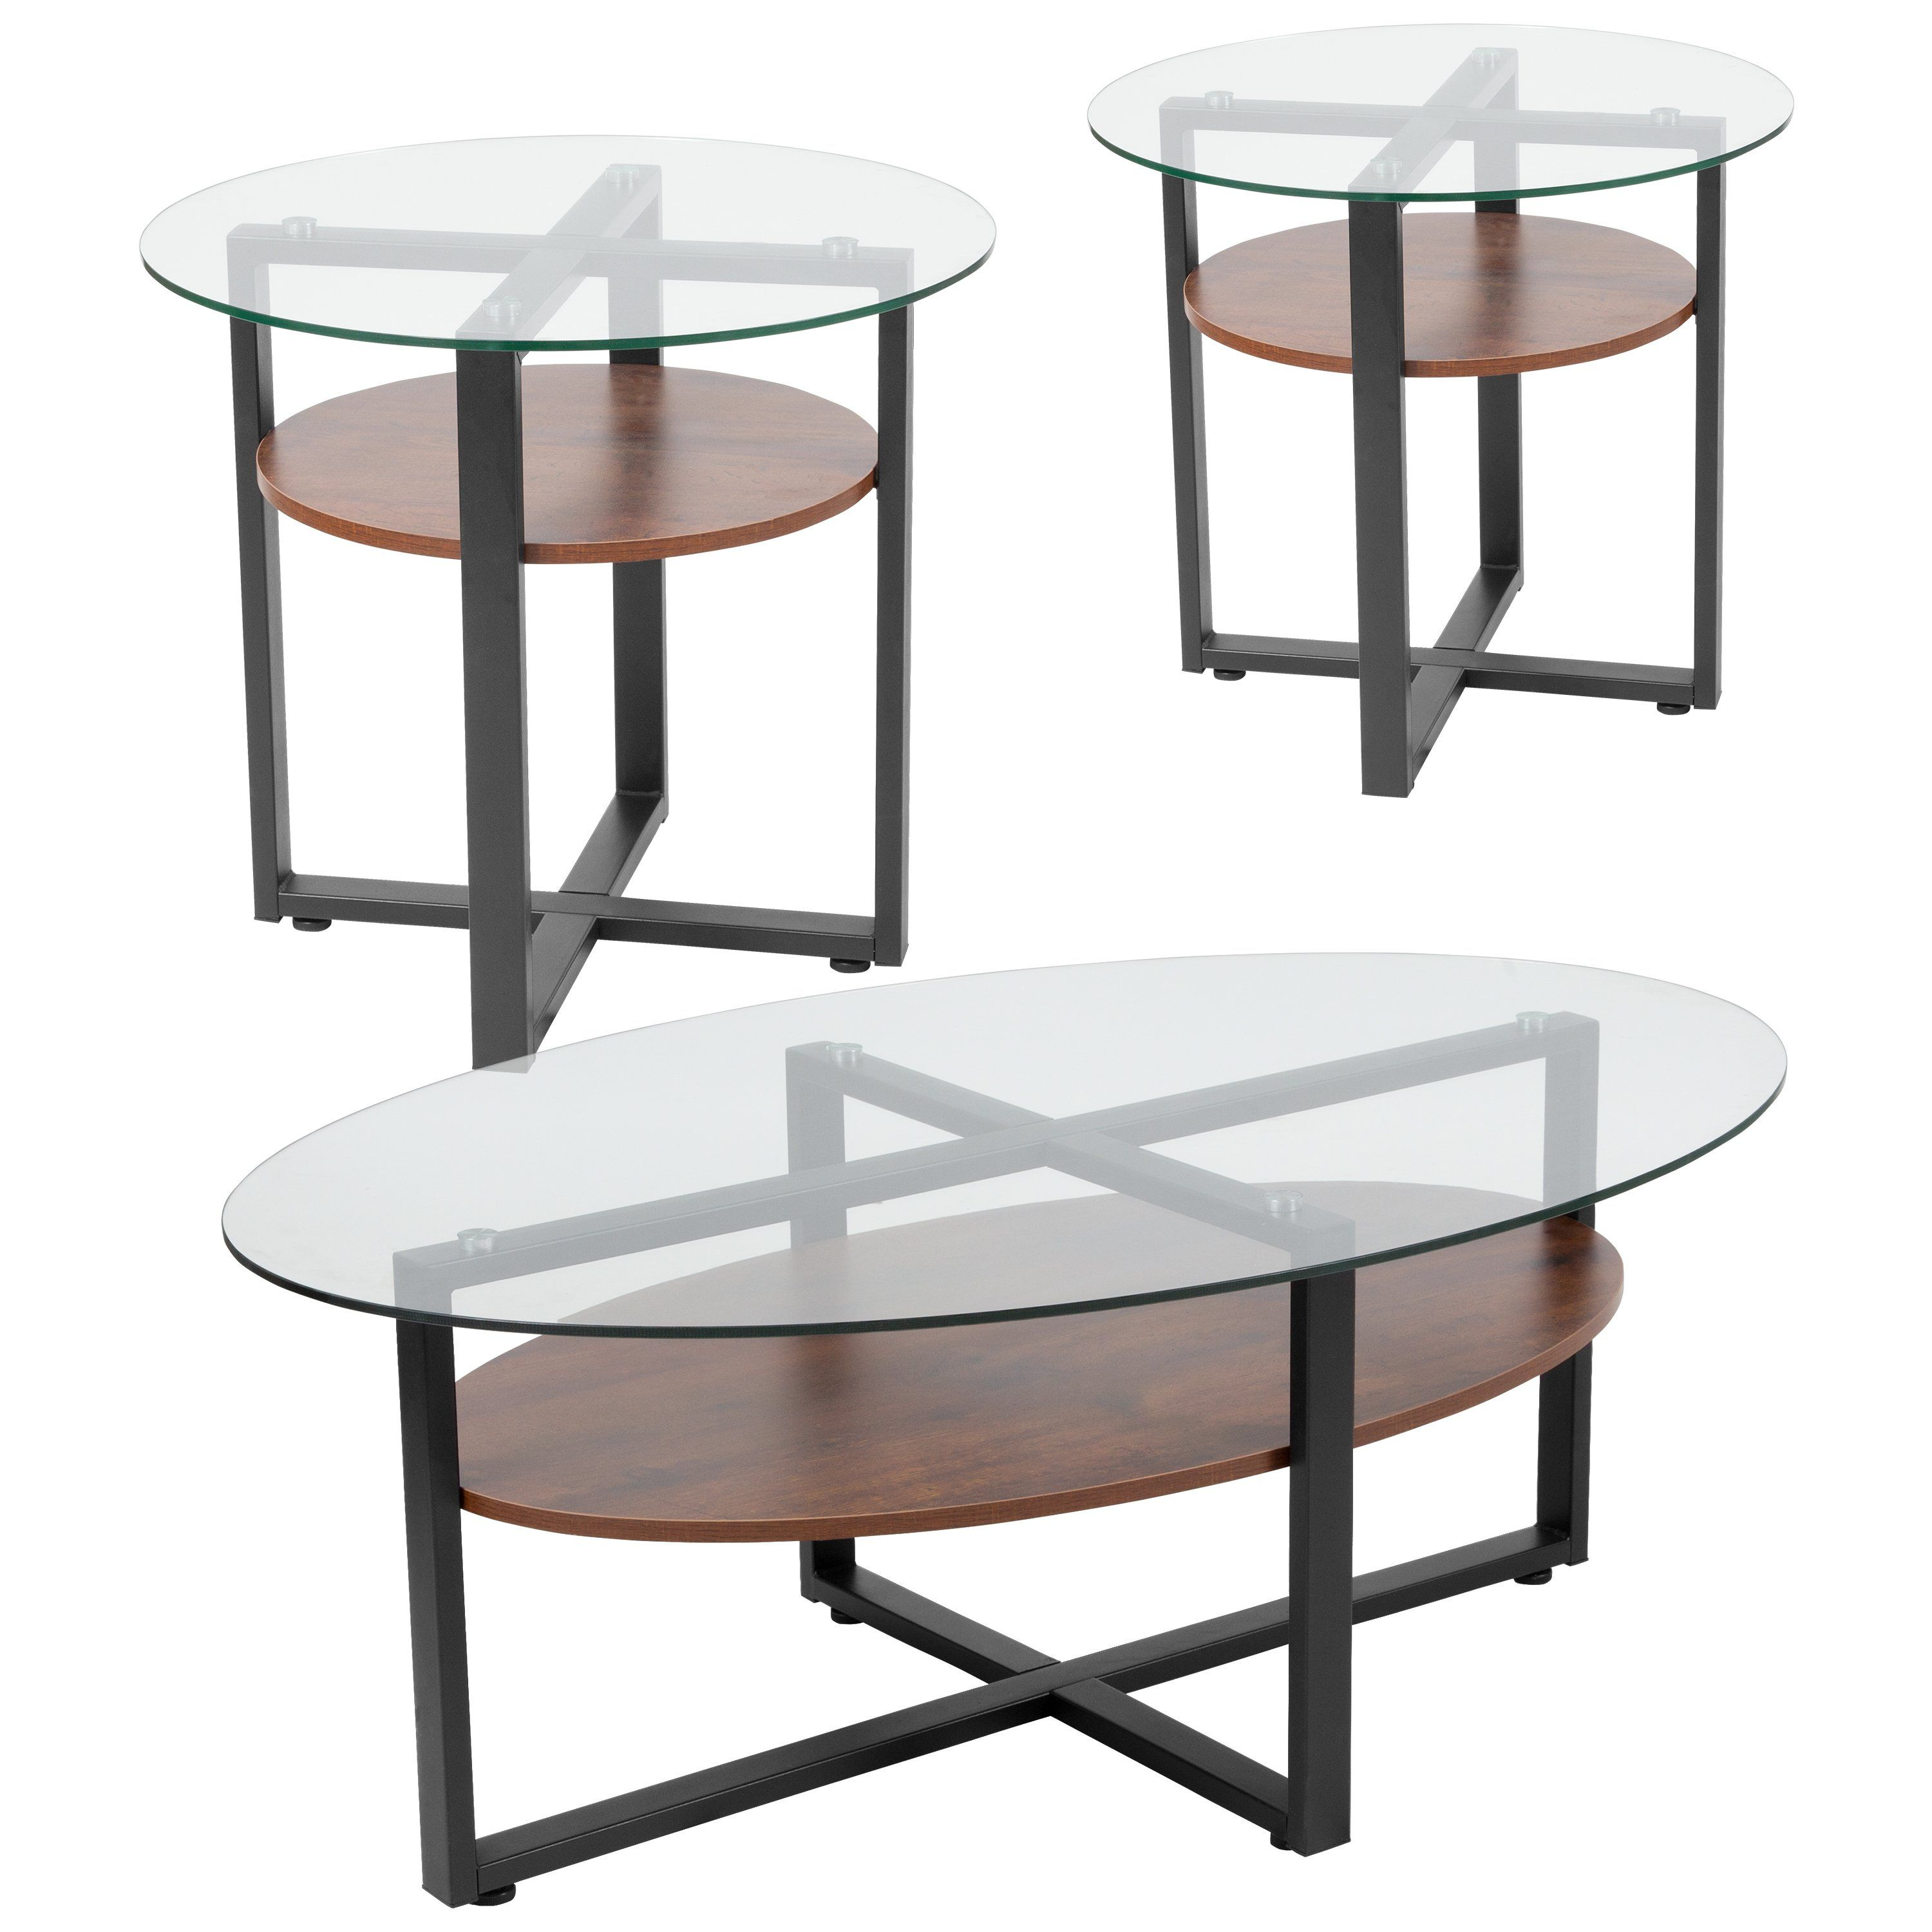 Princeton Collection 3 Piece Glass Table Set With Wood Finish And Metal Legs Glass Table Set Coffee End Tables End Table Sets